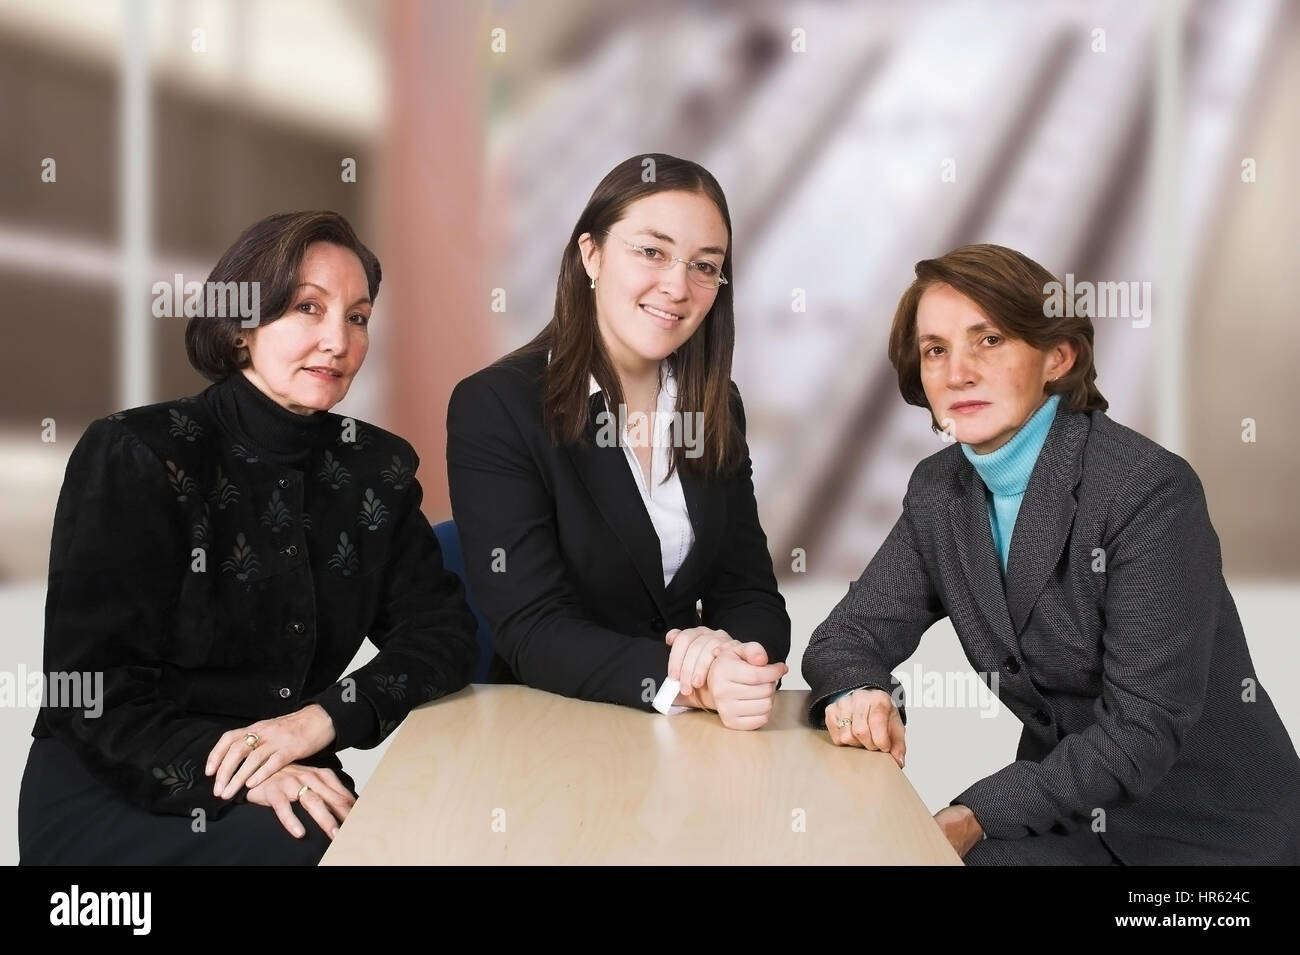 Business female management team in a corporate environment 2 - Stock Image